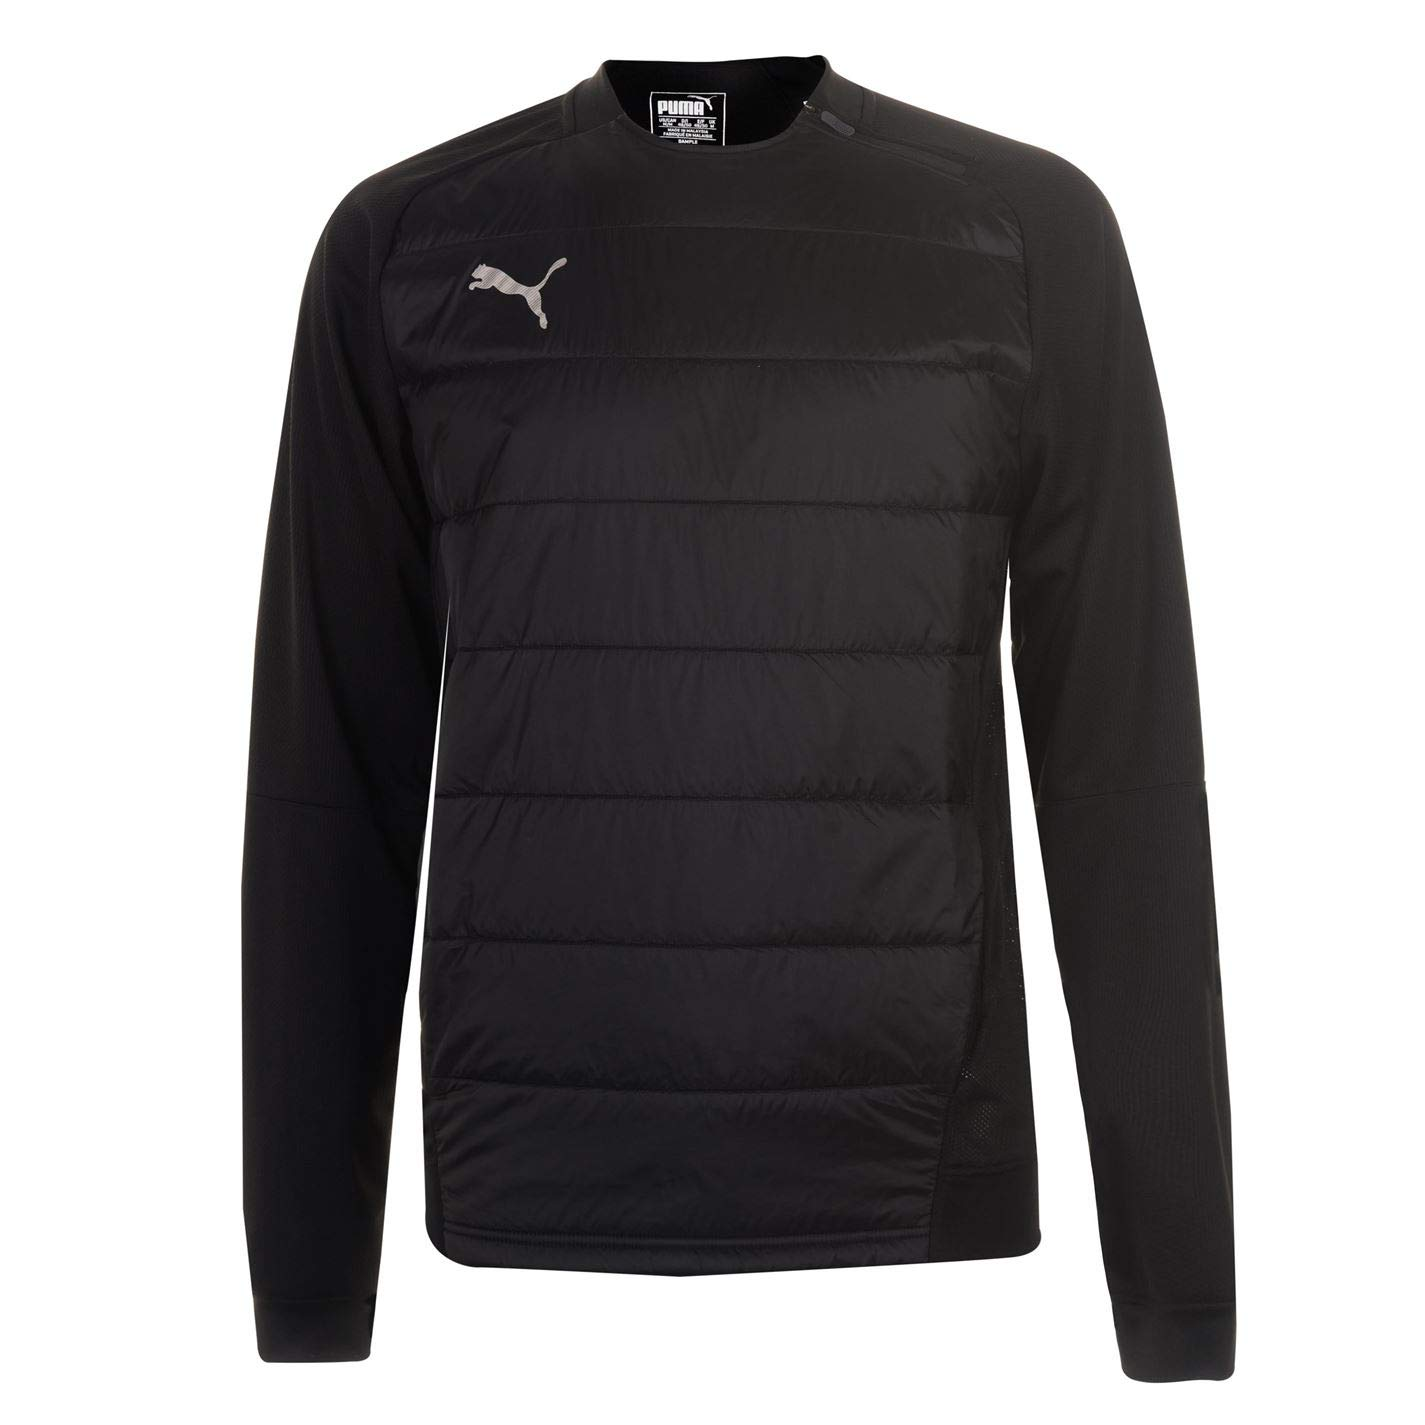 Puma Herren Ftbinxt Sweat Top Trainingssweatshirt